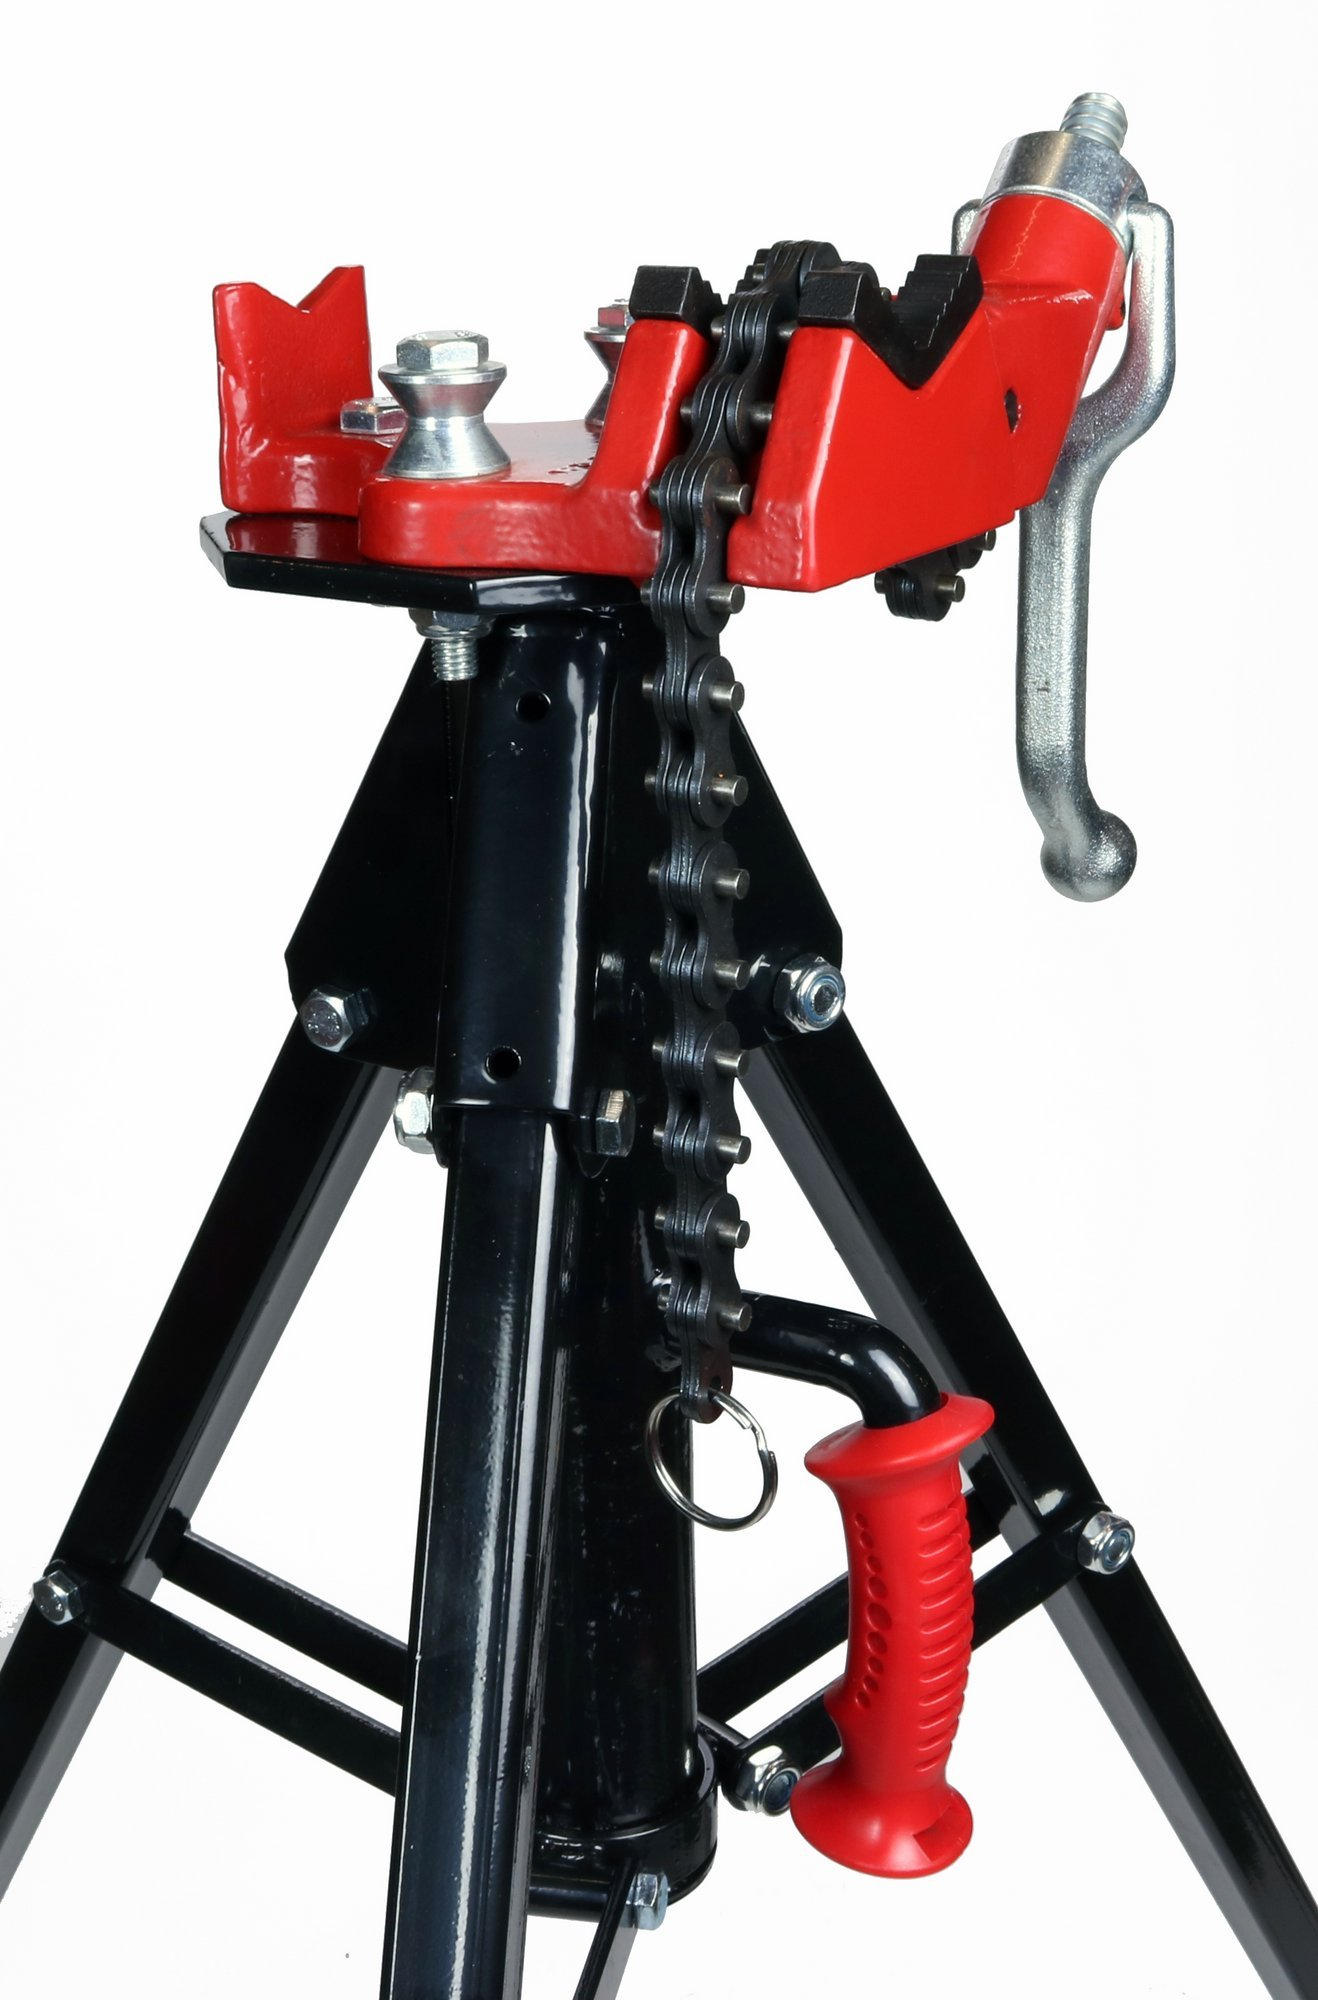 Toledo Pipe 425 Stand Portable Tripod Chain Vise works with RIDGID 12R 700 Pipe Threader by Toledo Pipe Tools (Image #2)